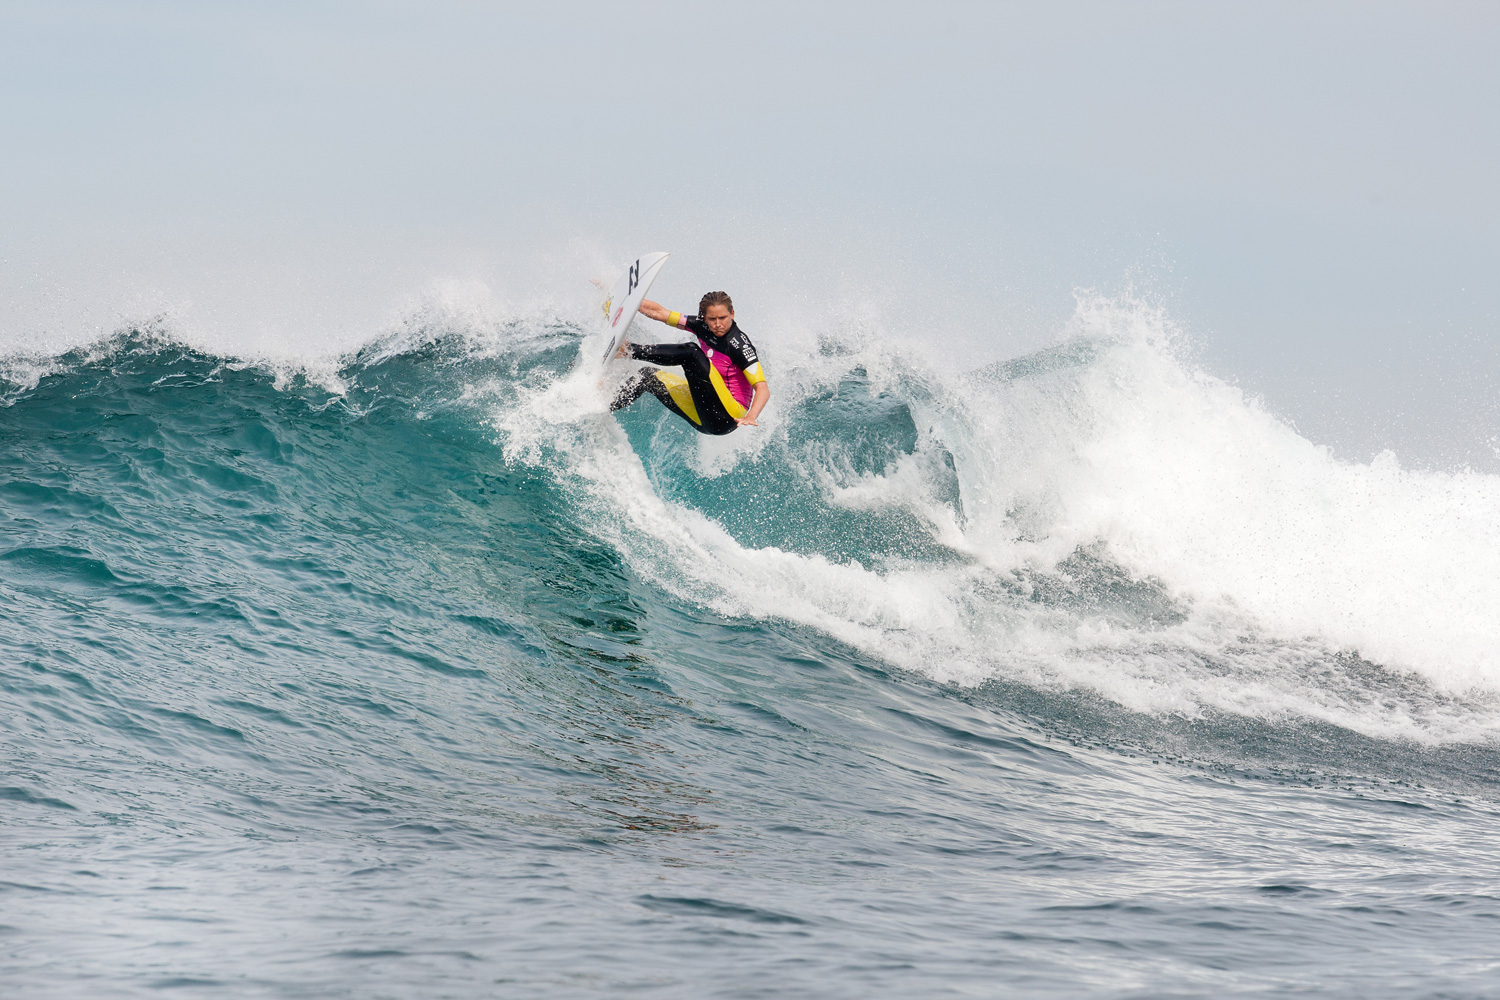 After winning the first heat, Courtney Conlogue advanced into Round 3 of the surfing tournament in Bells Beach, Australia.